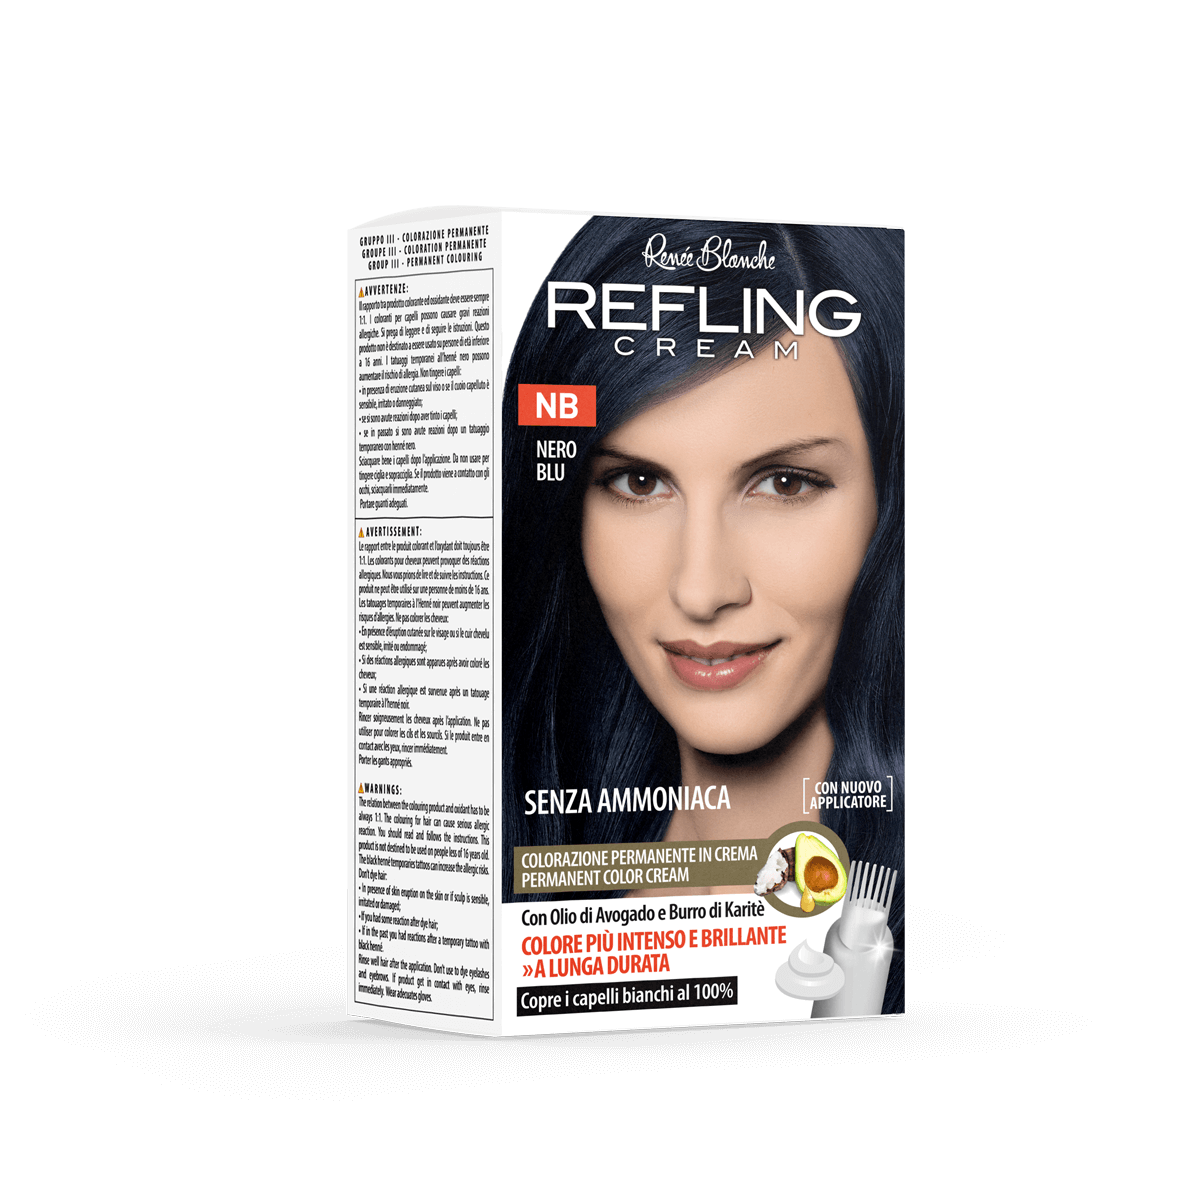 [:it]NB-Nero-blu-refling[:]